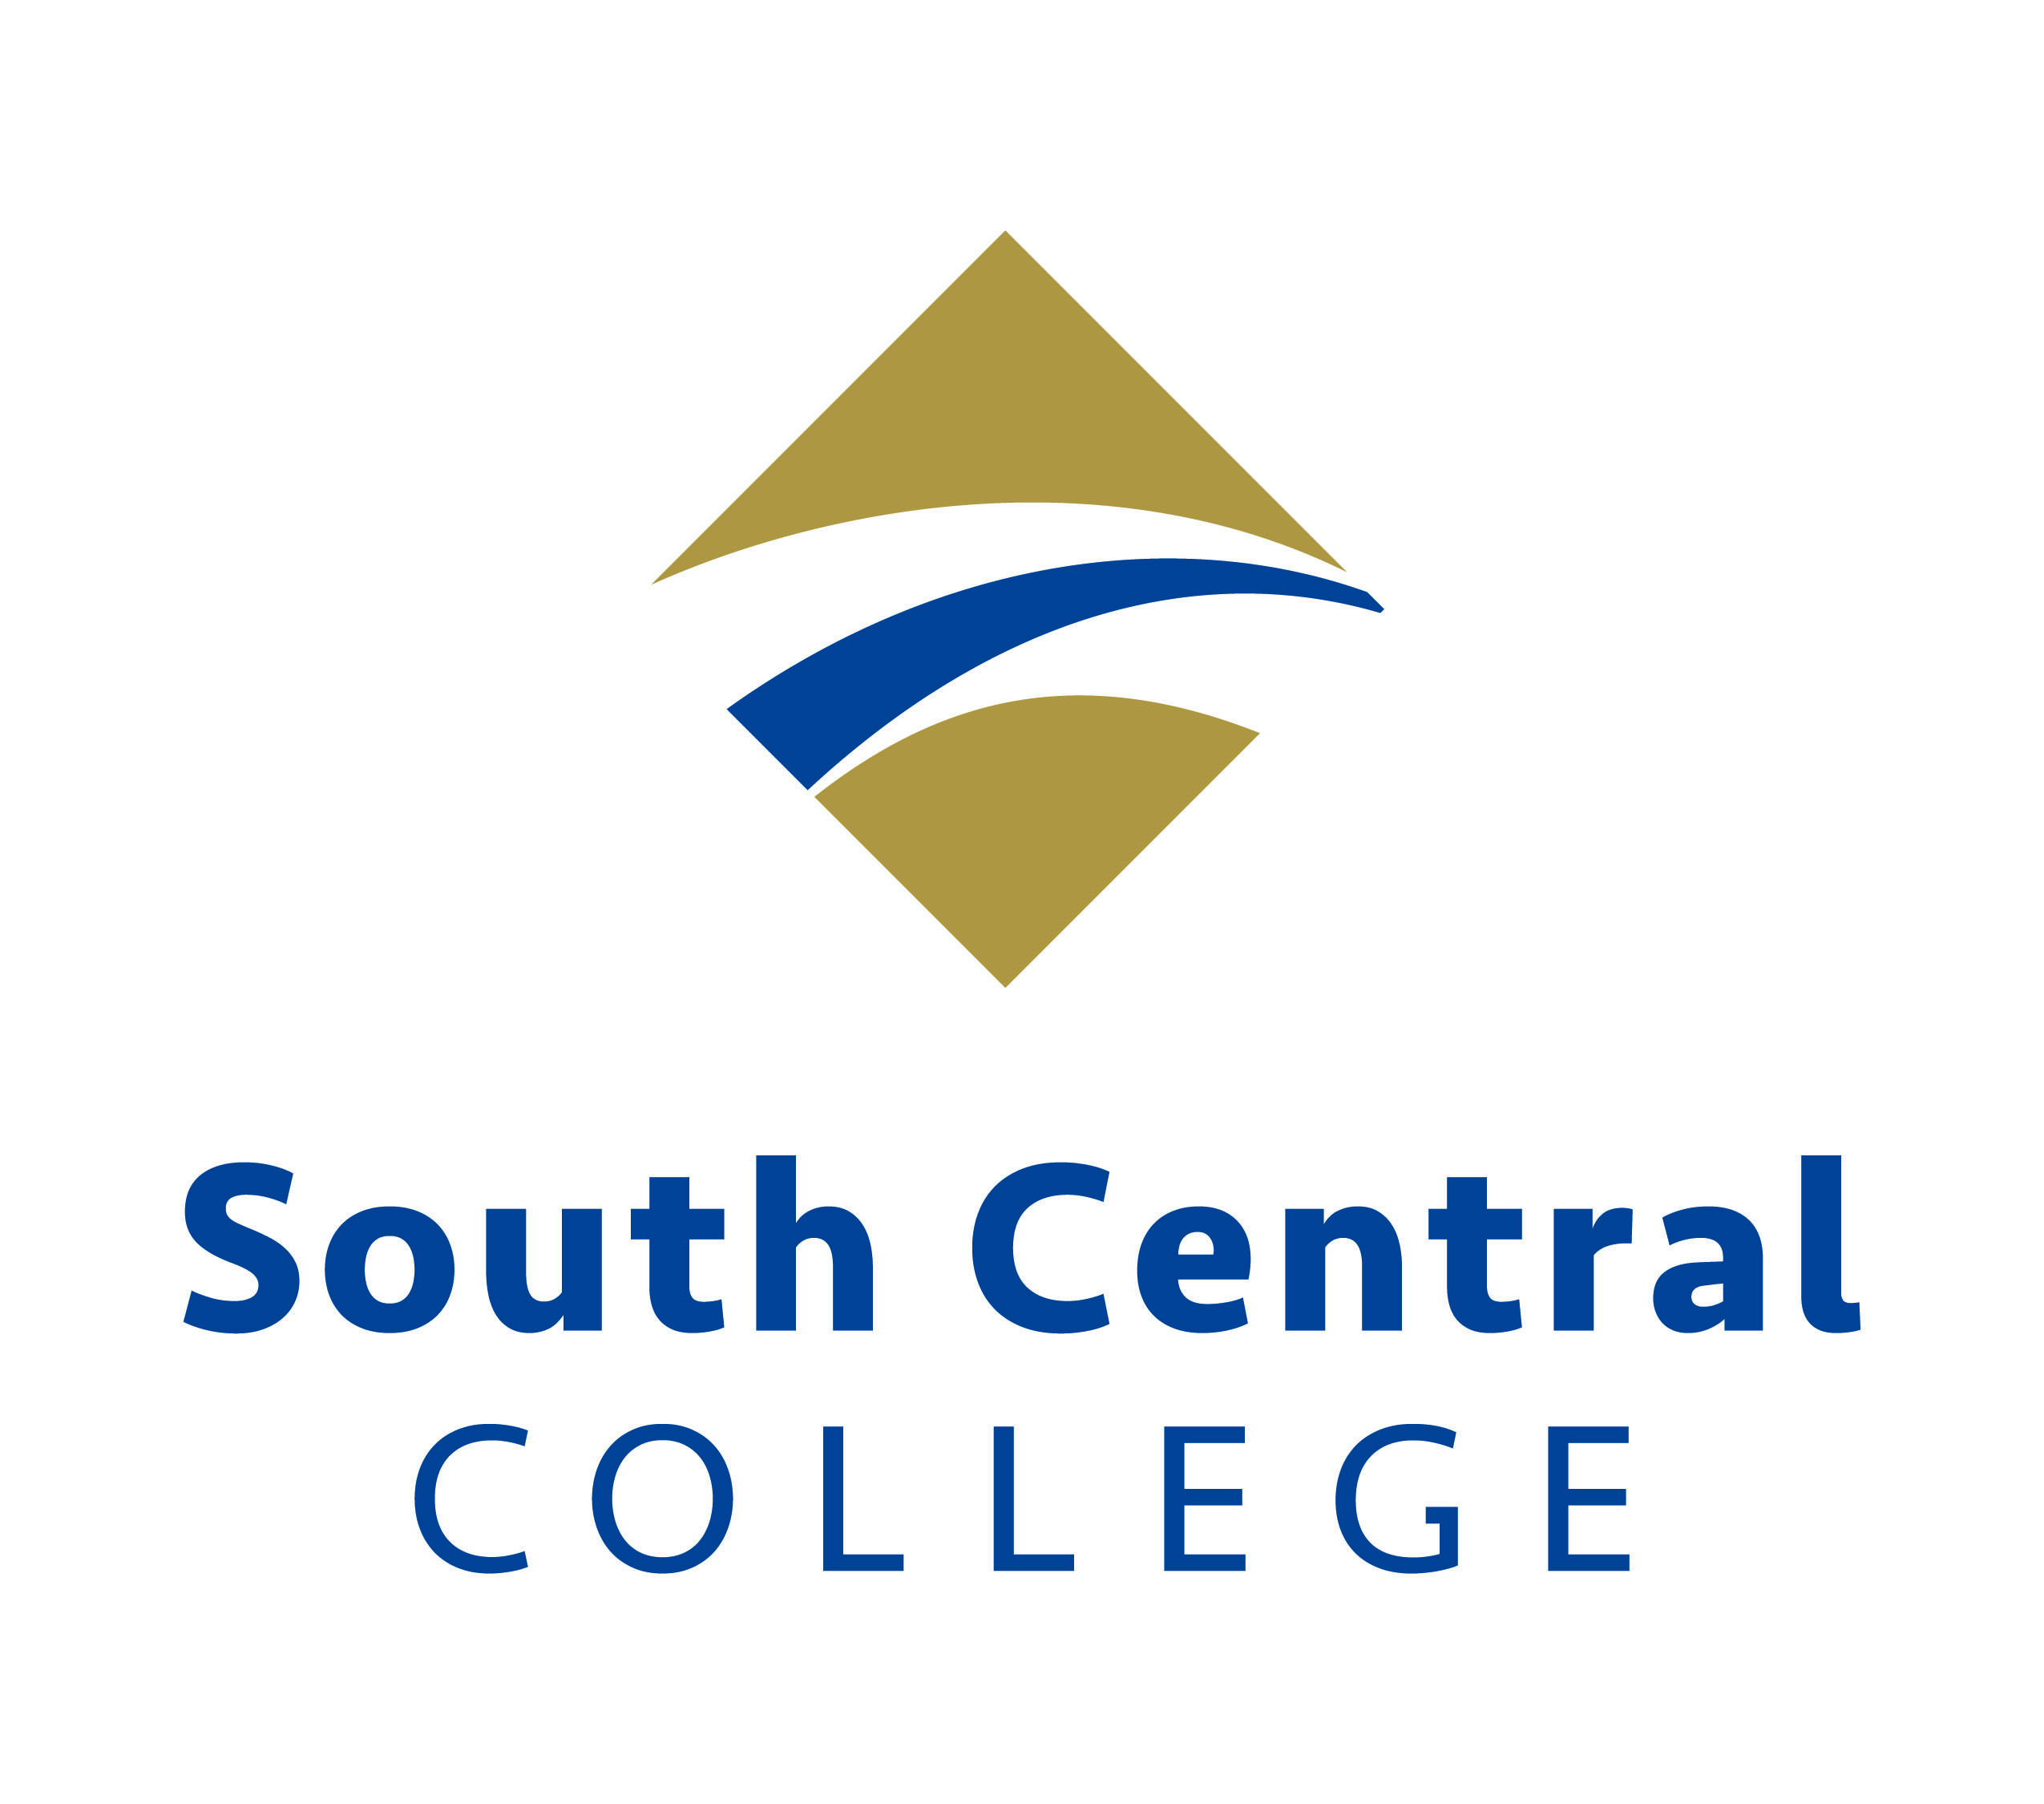 South Central College - Faribault Campus